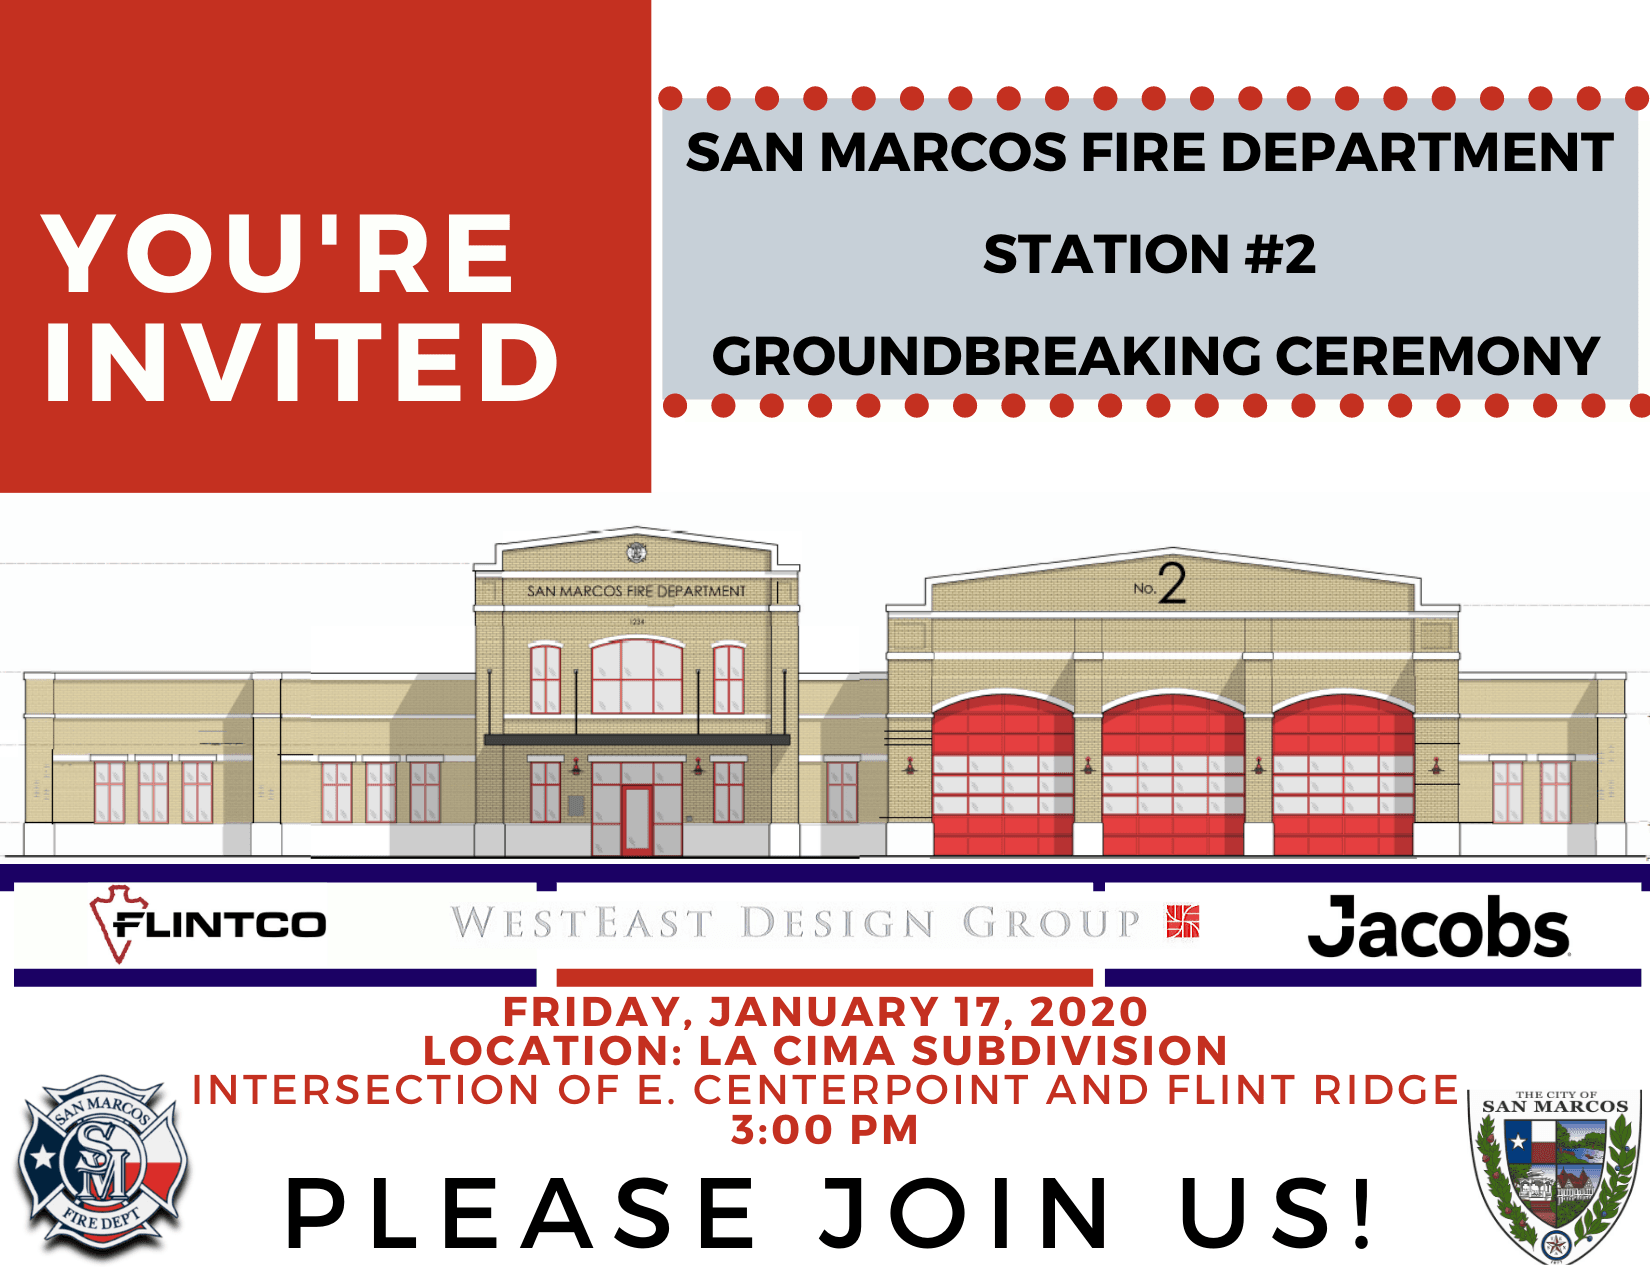 01172020 Sta 2 Groundbreaking Ceremony Invitation